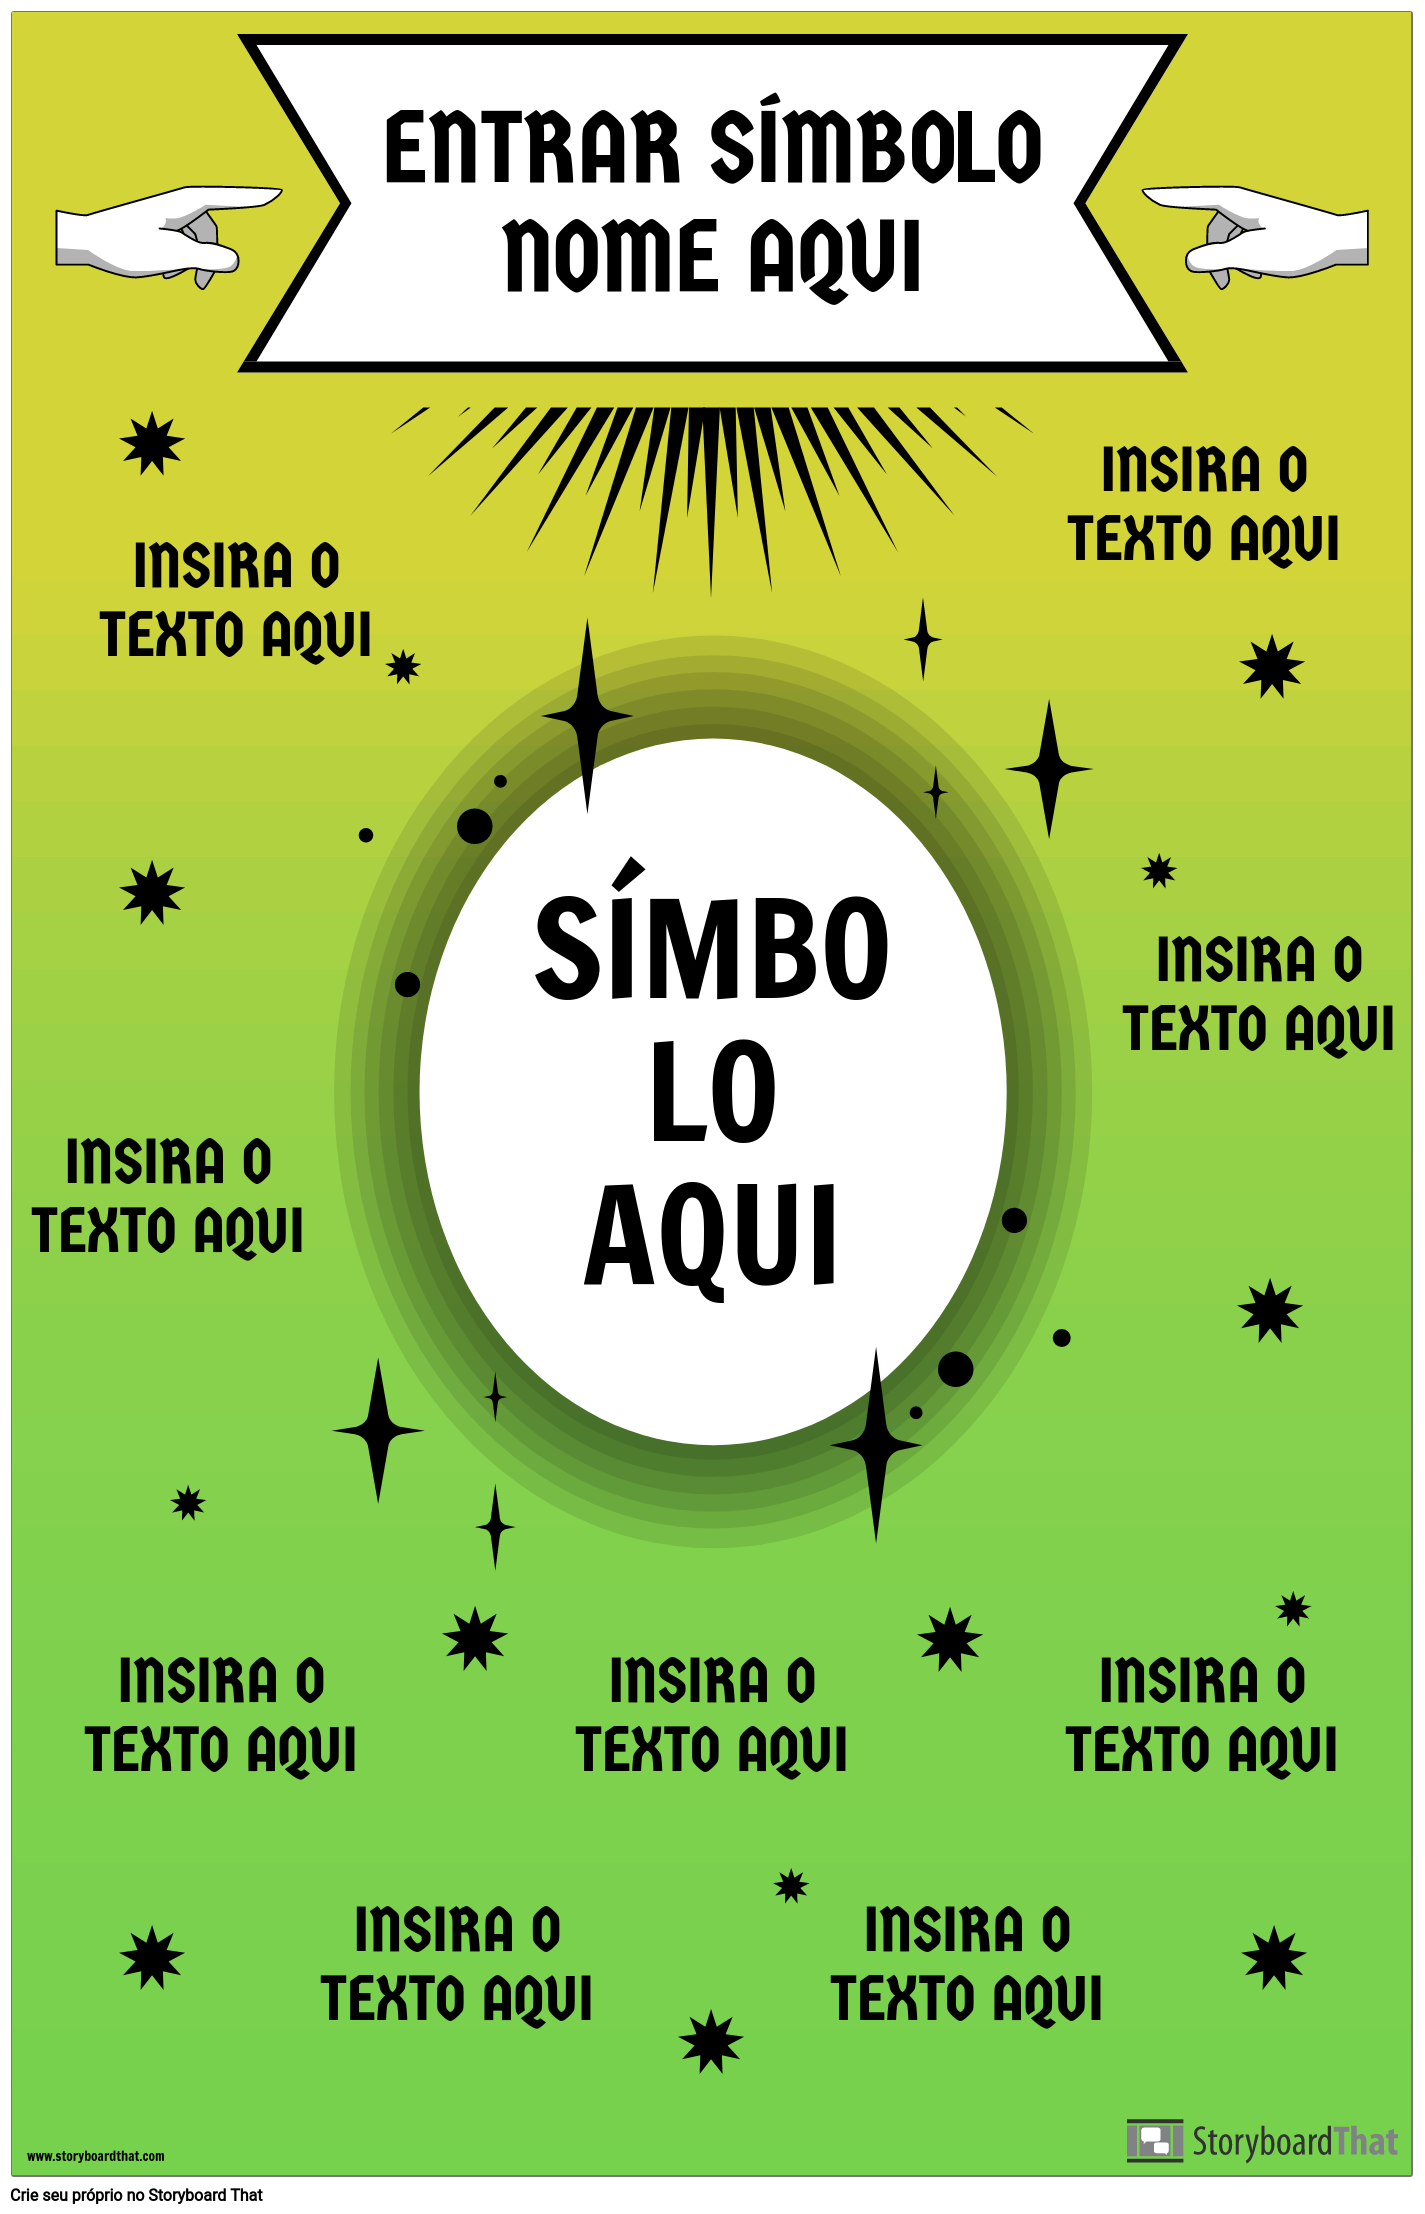 Cartaz do Símbolo da Matemática